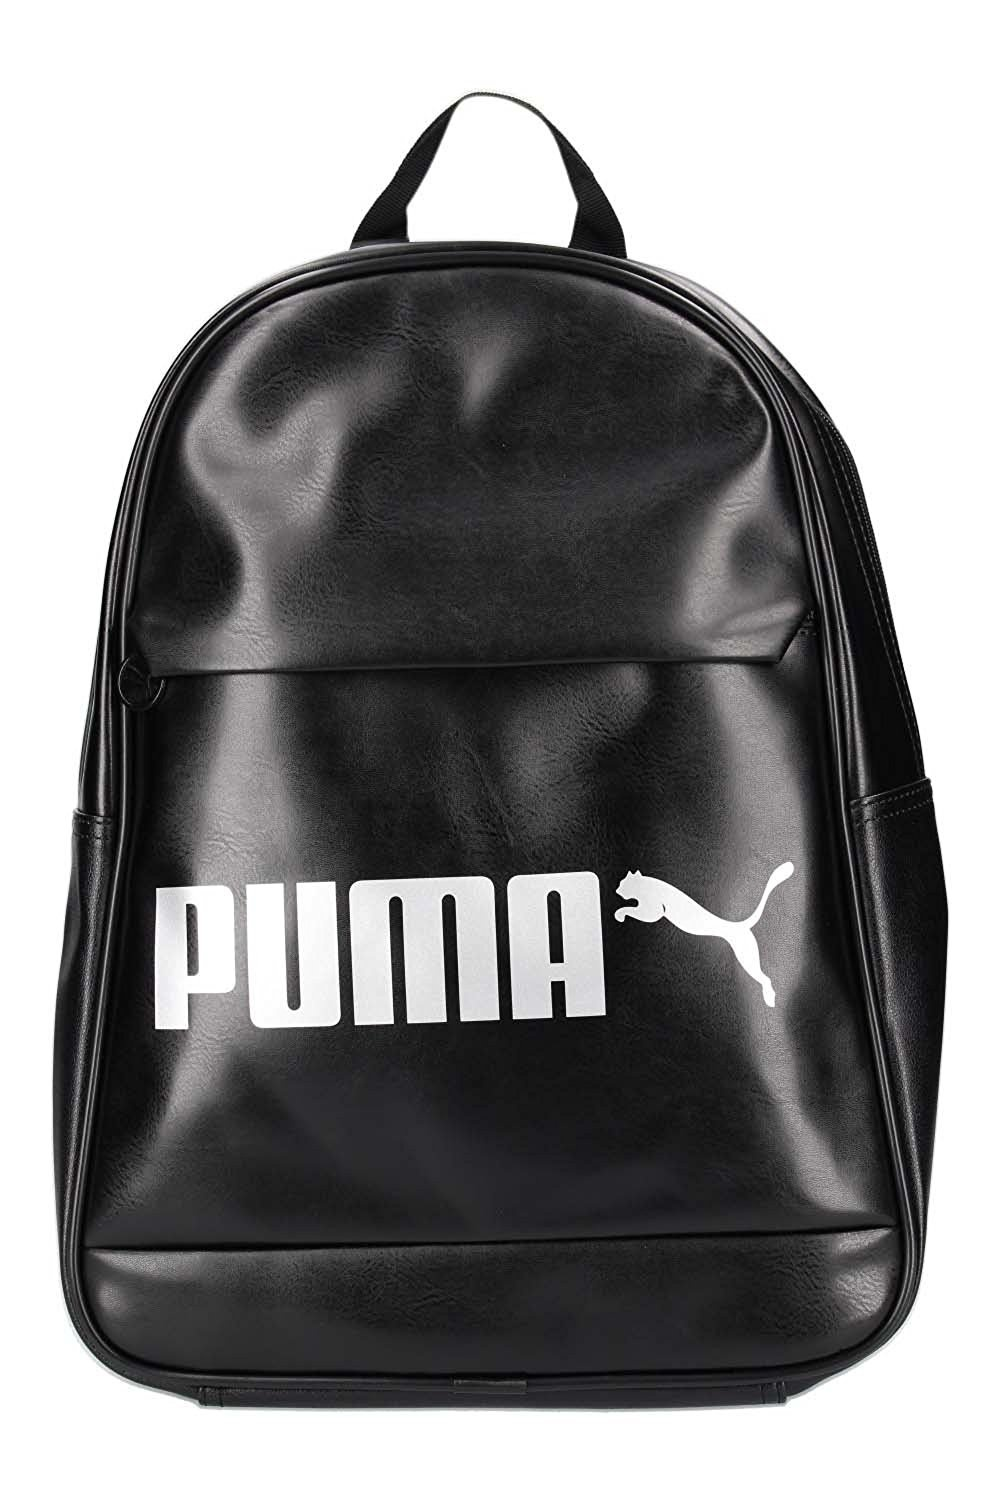 45ce2d55c3 PUMA Portable Campus Bag Black Whisper White 1.5 Litres by Puma - Shop  Online for Bags in New Zealand